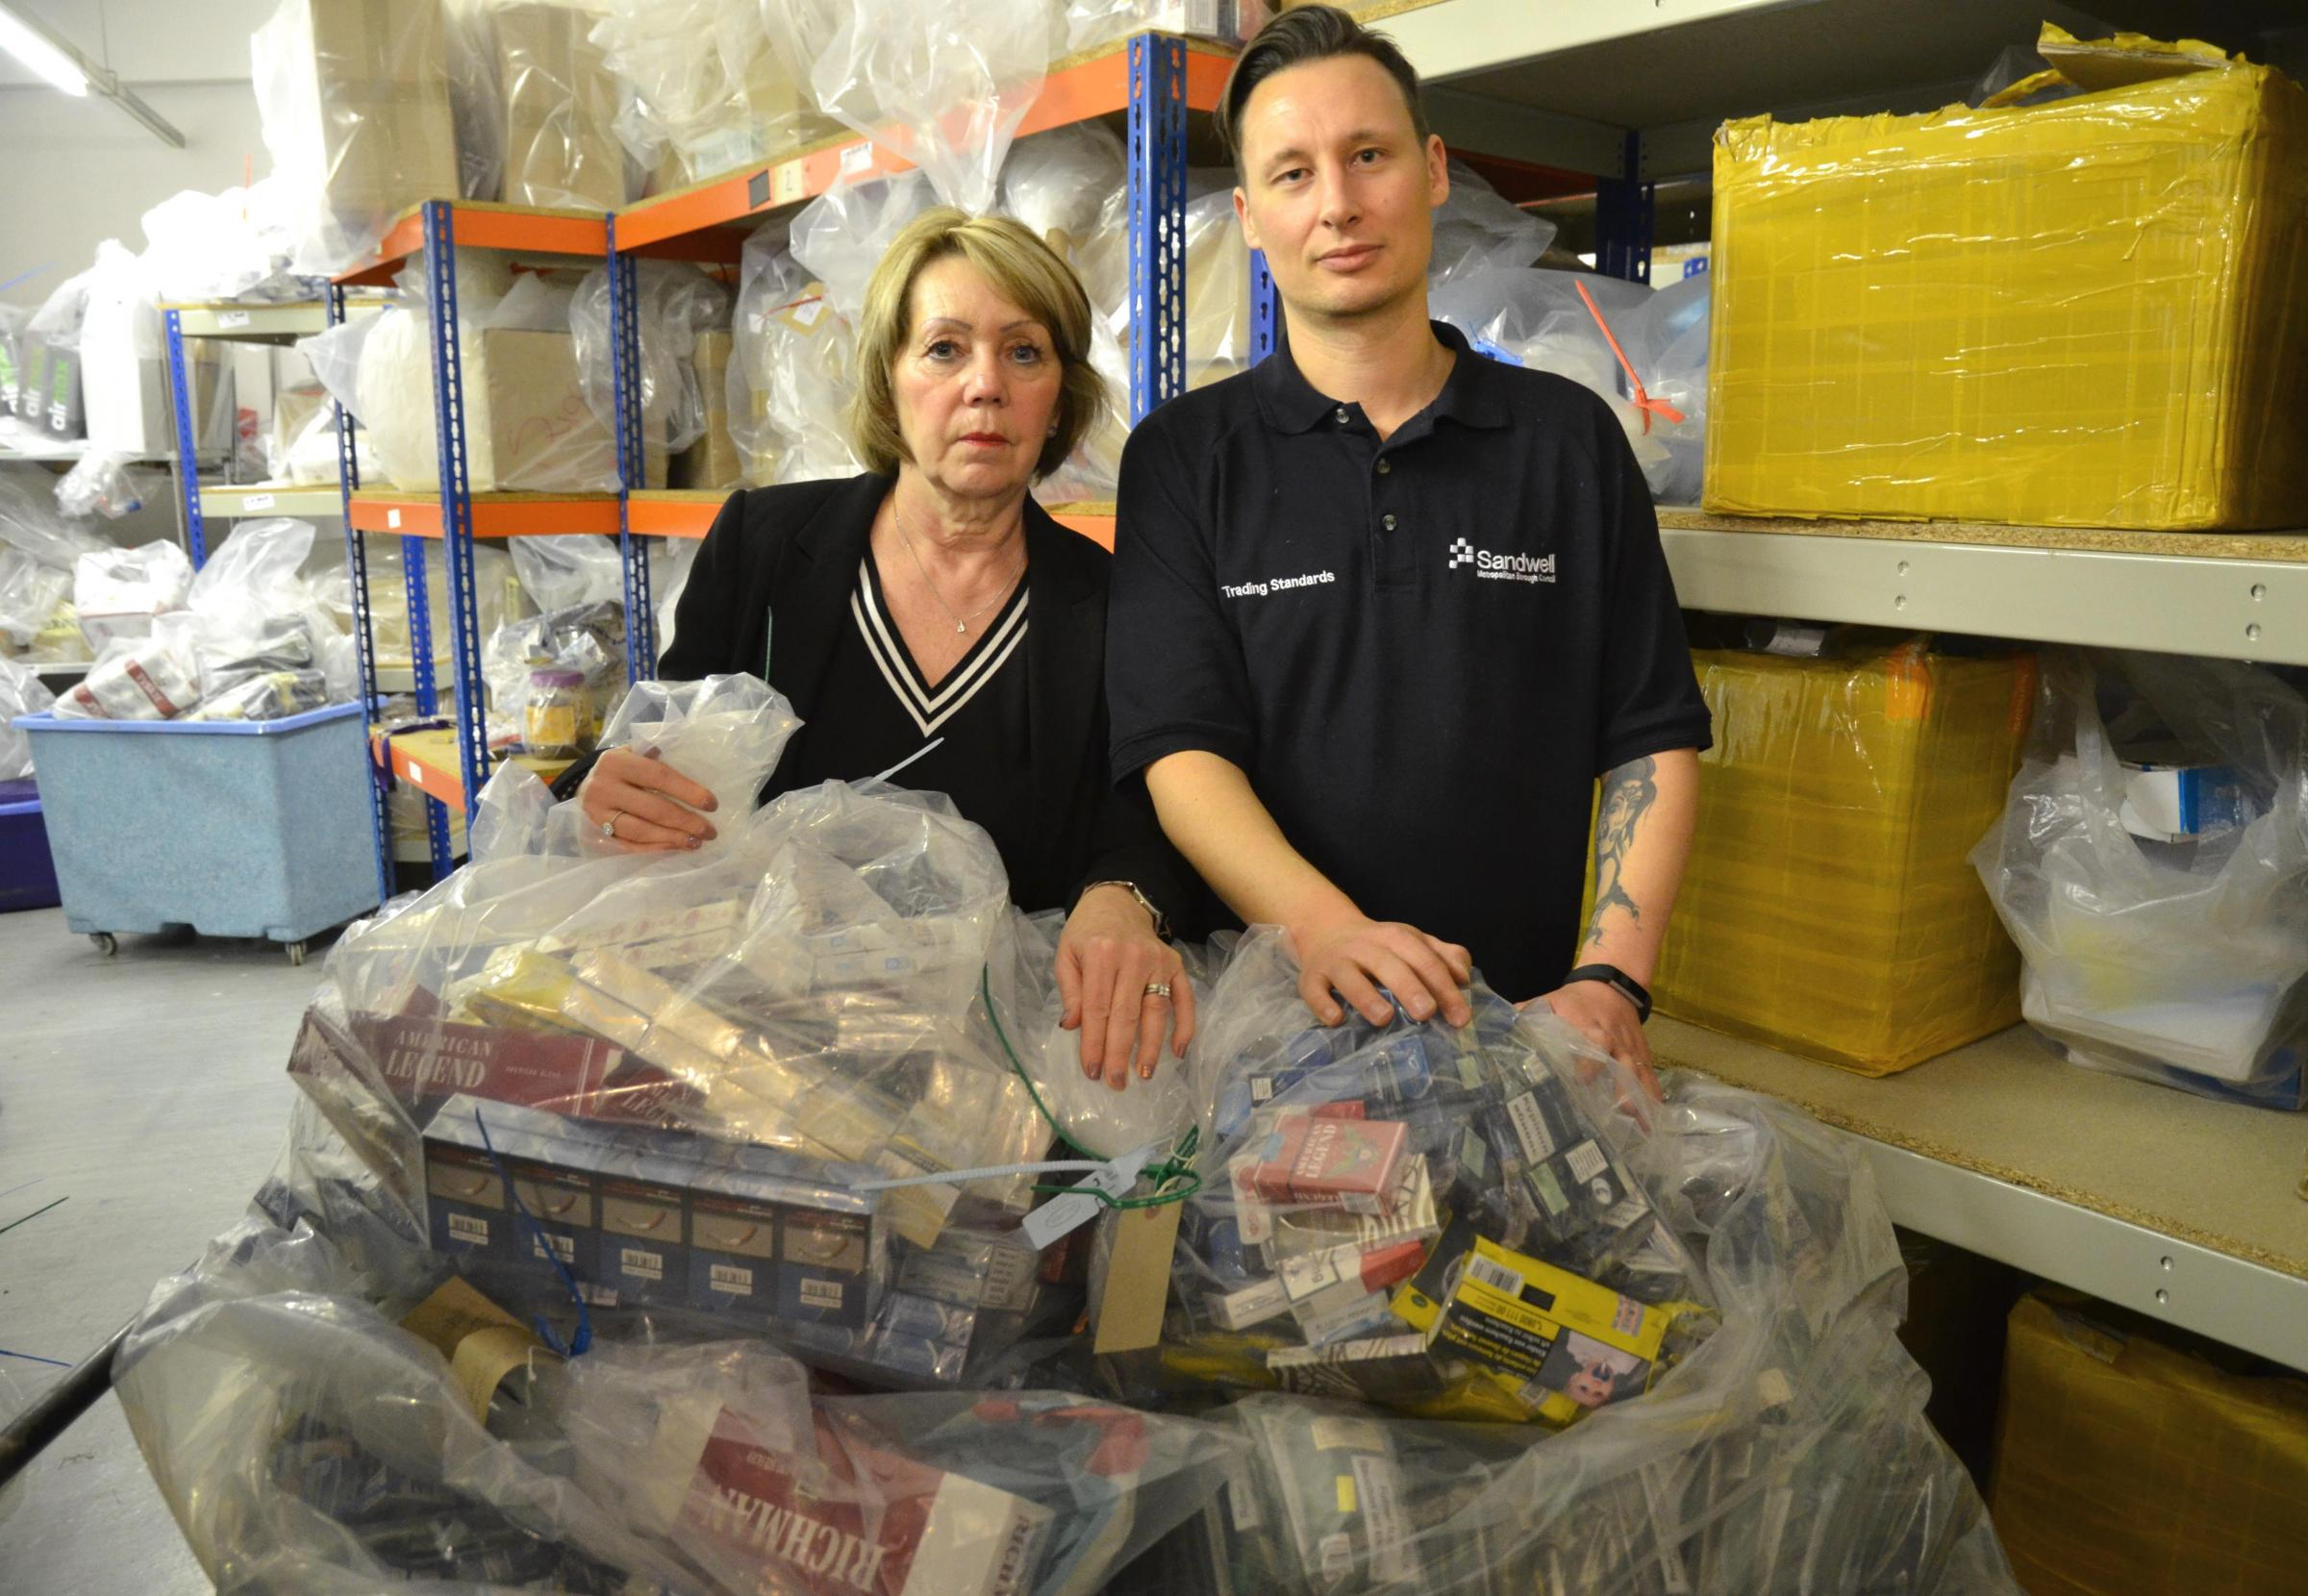 Cabinet member for public health and protection Councillor Elaine Costigan and Mark Beesley from Sandwell Trading Standards with some of the seized items.